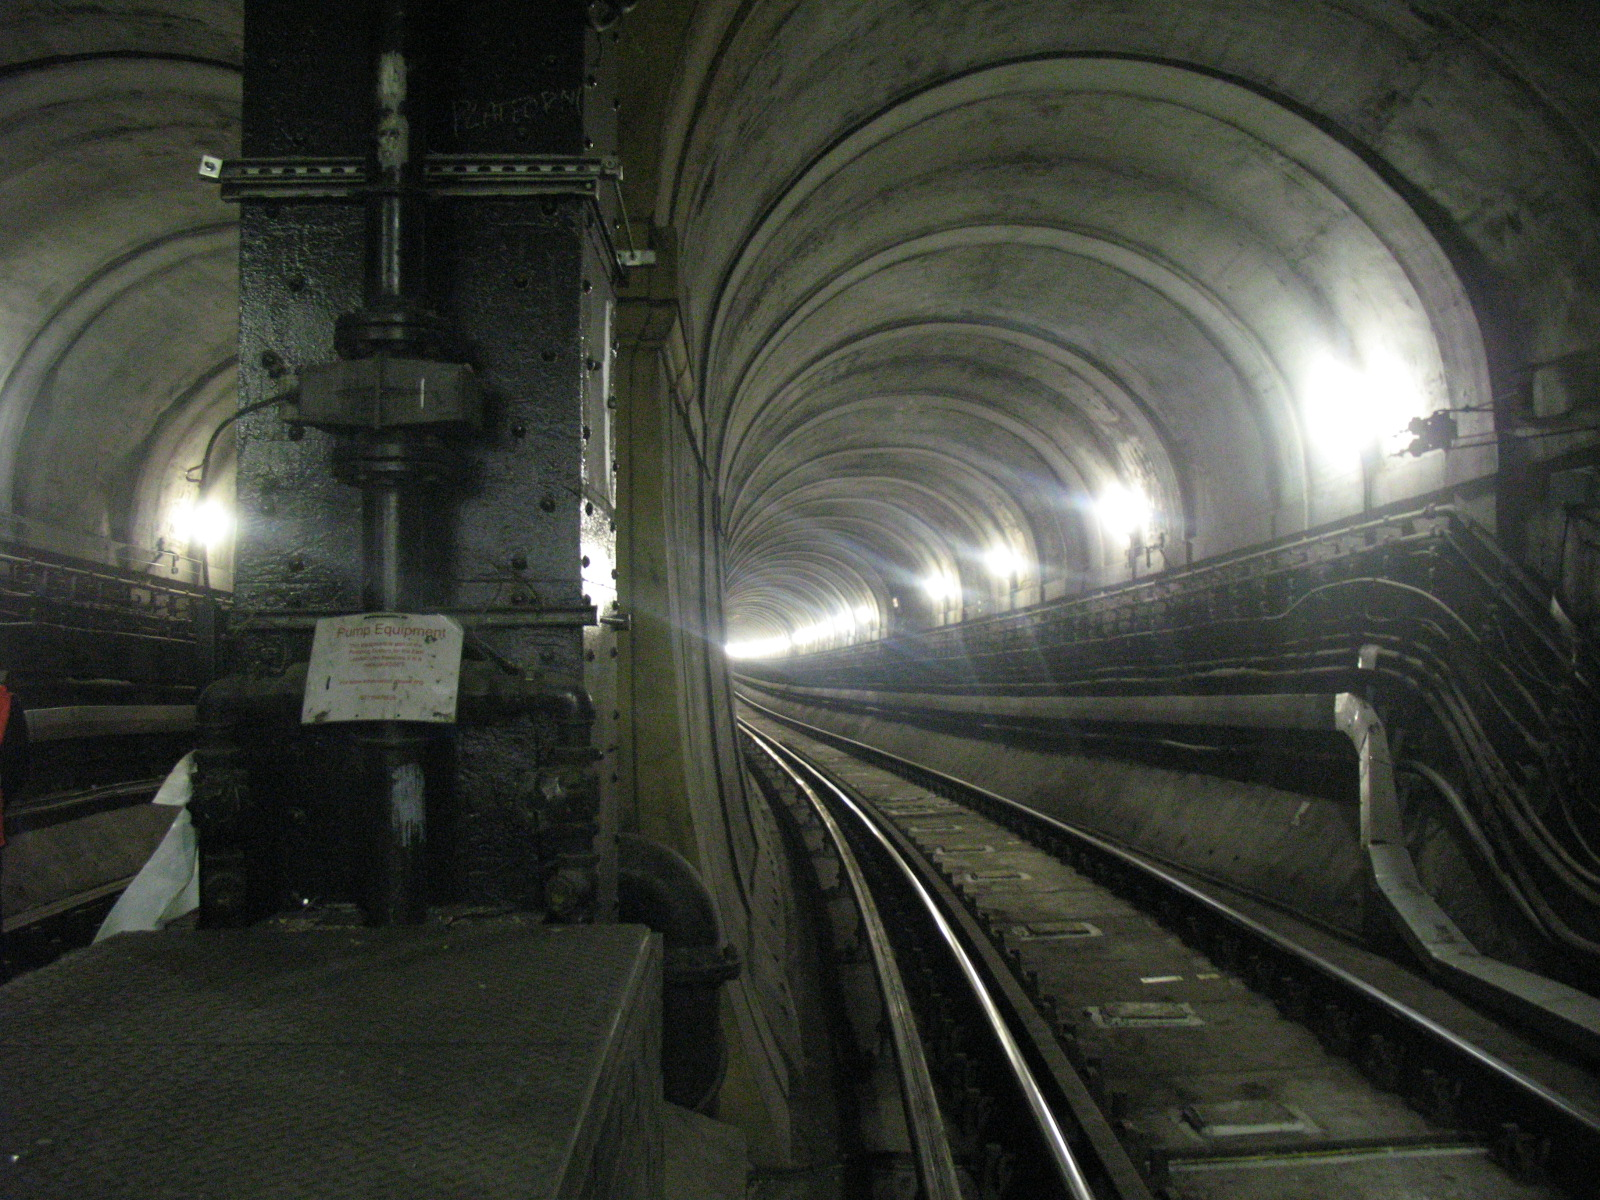 Undergroun London tunnel fantasmi a Londra